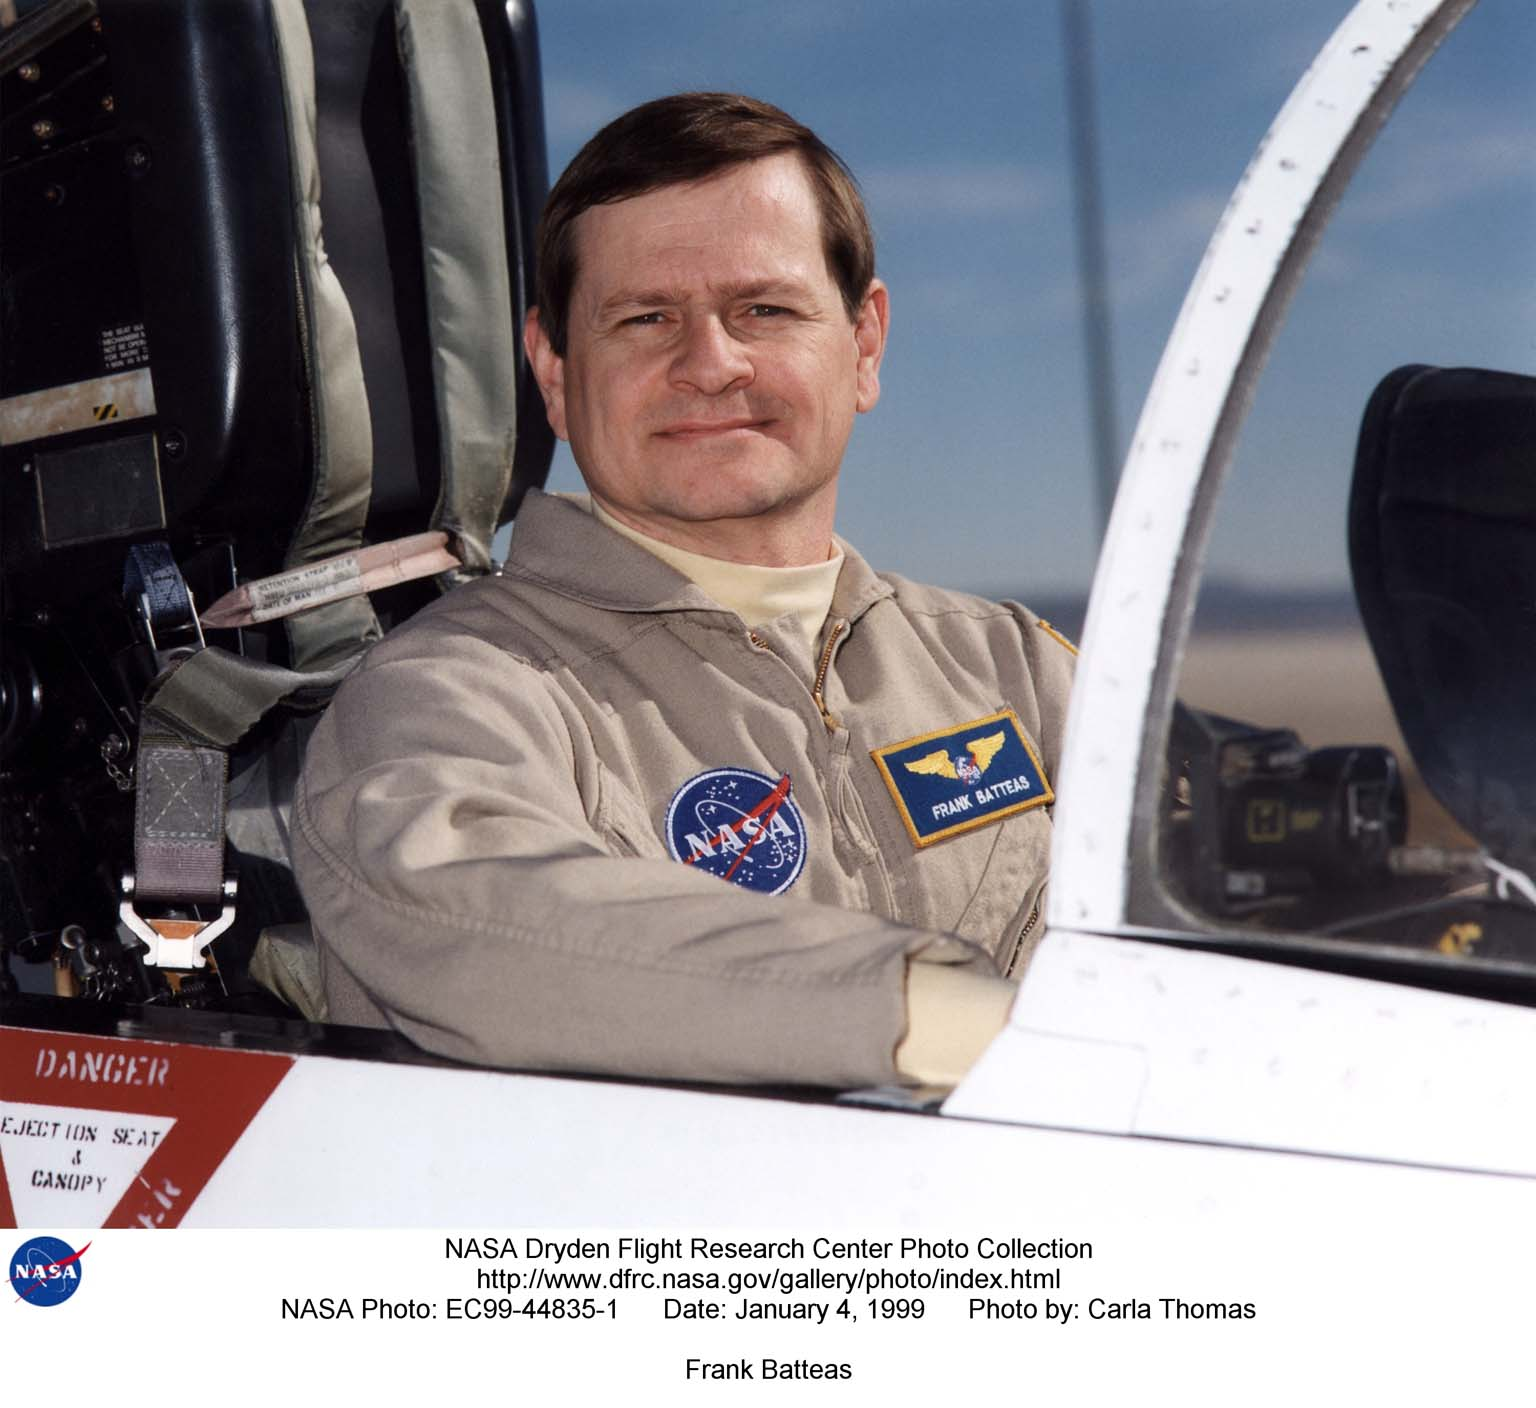 Frank Batteas is a research test pilot in the Flight Crew Branch of NASA's Dryden Flight Research Center, Edwards, California. He is currently a project pilot for the F/A-18 and C-17 flight research projects. In addition, his flying duties include operation of the DC-8 Flying Laboratory in the Airborne Science program, and piloting the B-52B launch aircraft, the King Air, and the T-34C support aircraft. Batteas has accumulated more than 4,700 hours of military and civilian flight experience in more than 40 different aircraft types. Batteas came to NASA Dryden in April 1998, following a career in the U.S. Air Force. His last assignment was at Wright-Patterson Air Force Base, Dayton, Ohio, where Lieutenant Colonel Batteas led the B-2 Systems Test and Evaluation efforts for a two-year period. Batteas graduated from Class 88A of the Air Force Test Pilot School, Edwards Air Force Base, California, in December 1988. He served more than five years as a test pilot for the Air Force's newest airlifter, the C-17, involved in nearly every phase of testing from flutter and high angle-of-attack tests to airdrop and air refueling envelope expansion. In the process, he achieved several C-17 firsts including the first day and night aerial refuelings, the first flight over the North Pole, and a payload-to-altitude world aviation record. As a KC-135 test pilot, he also was involved in aerial refueling certification tests on a number of other Air Force aircraft. Batteas received his commission as a second lieutenant in the U. S. Air Force through the Reserve Officer Training Corps and served initially as an engineer working on the Peacekeeper and Minuteman missile programs at the Ballistic Missile Office, Norton Air Force Base, Calif. After attending pilot training at Williams Air Force Base, Phoenix, Ariz., he flew operational flights in the KC-135 tanker aircraft and then was assigned to research flying at the 4950th Test Wing, Wright-Patterson. He flew extensively modified C-135 an